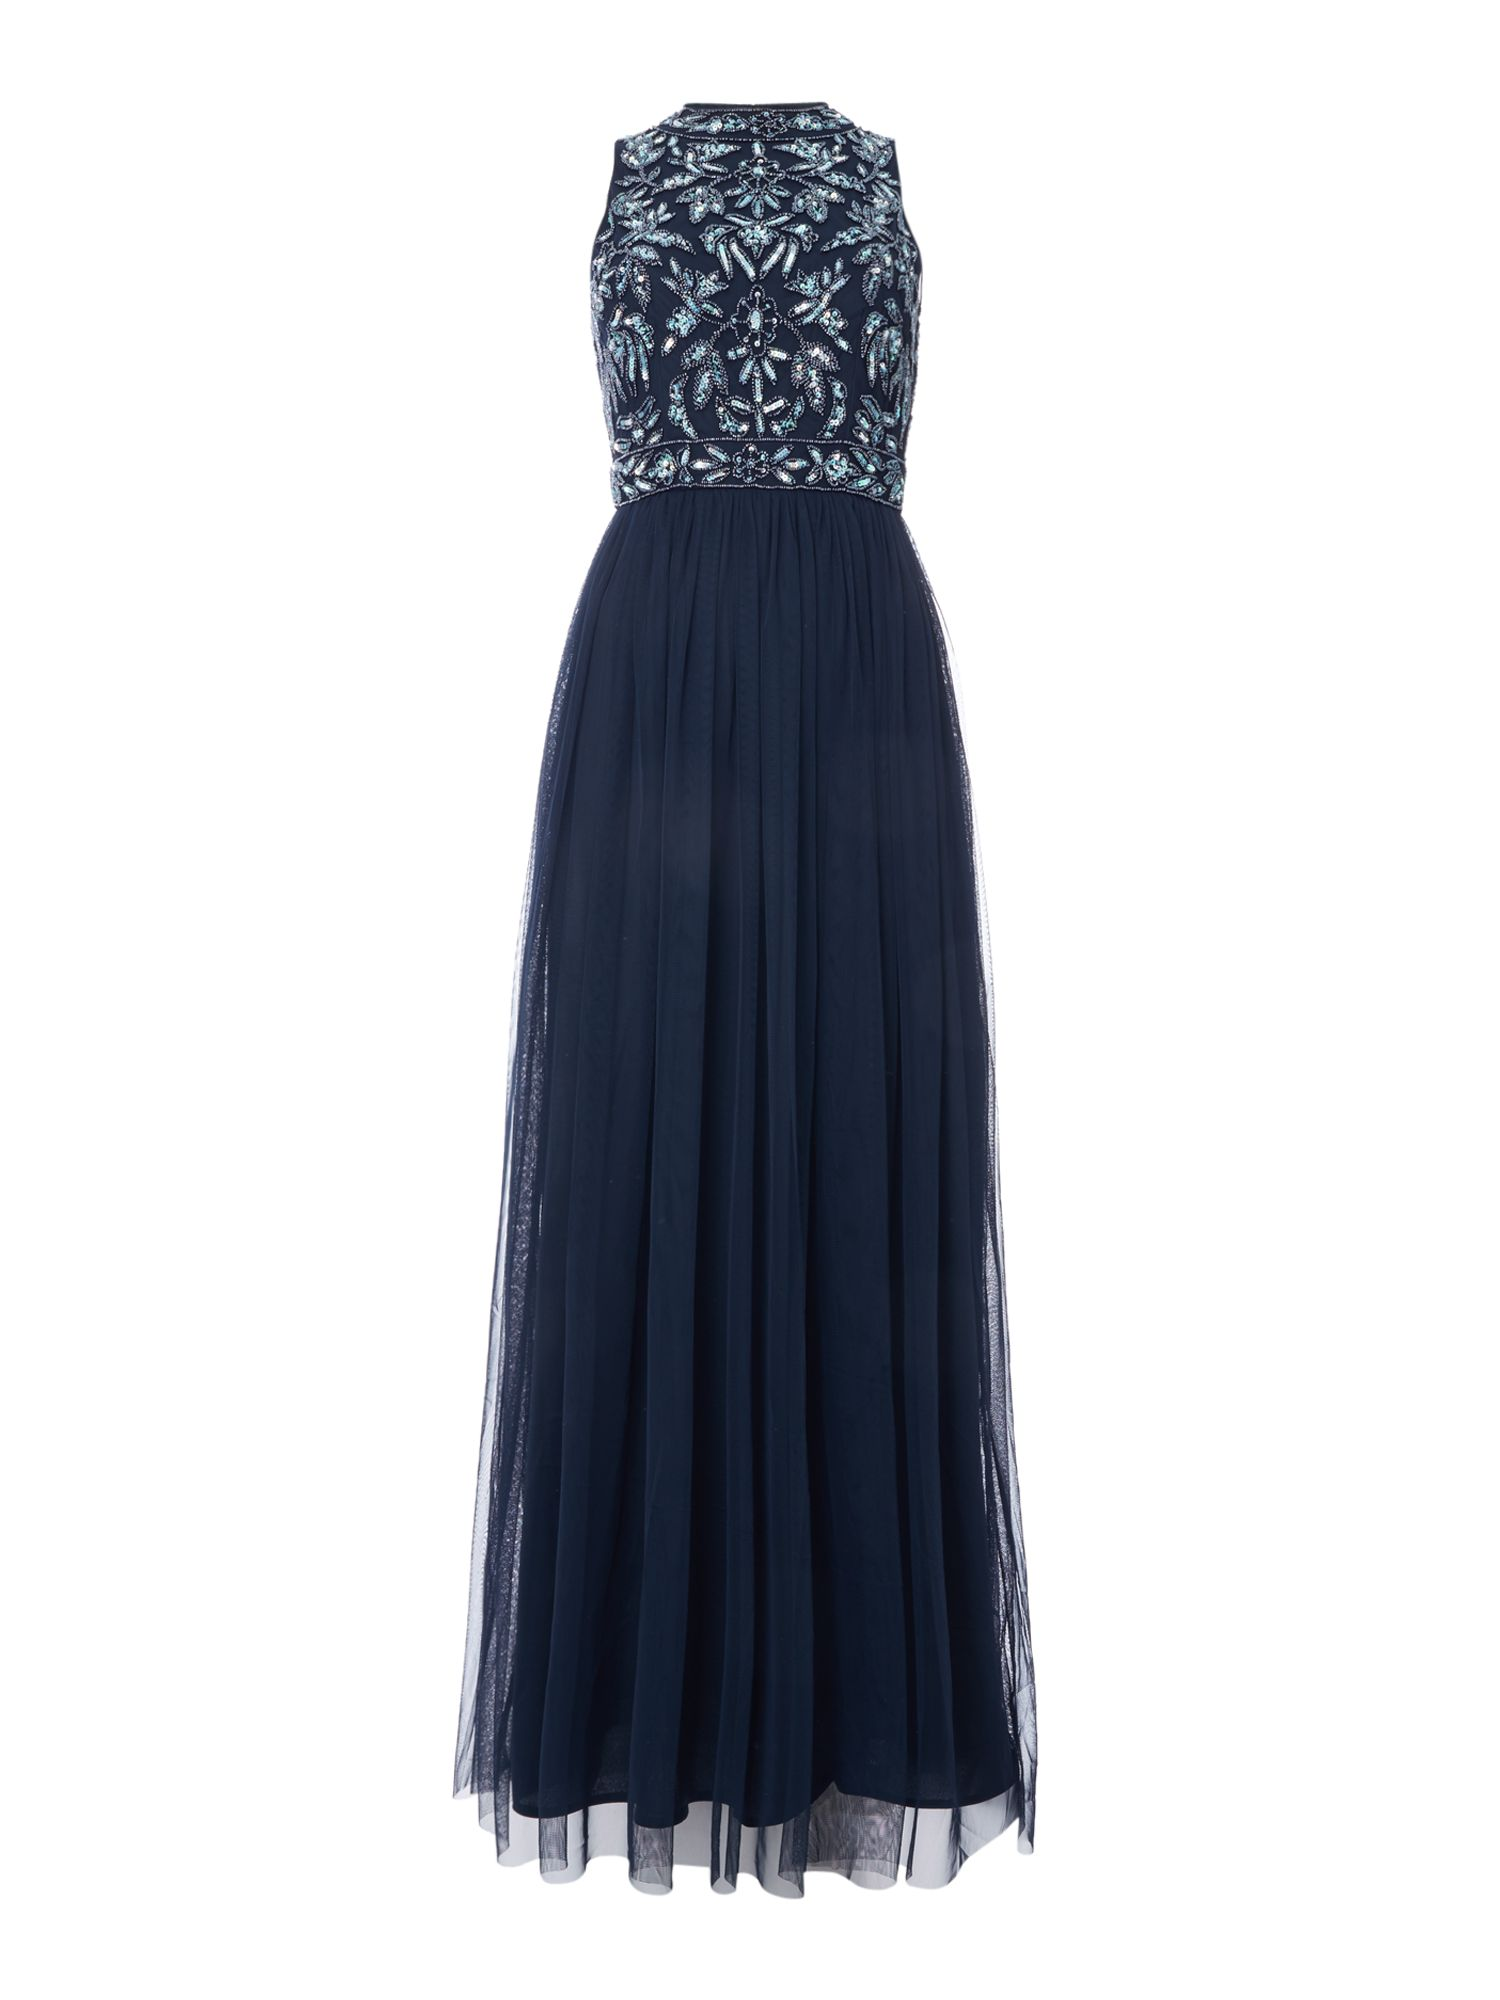 Lace and Beads High neck embellished top maxi dress, Blue